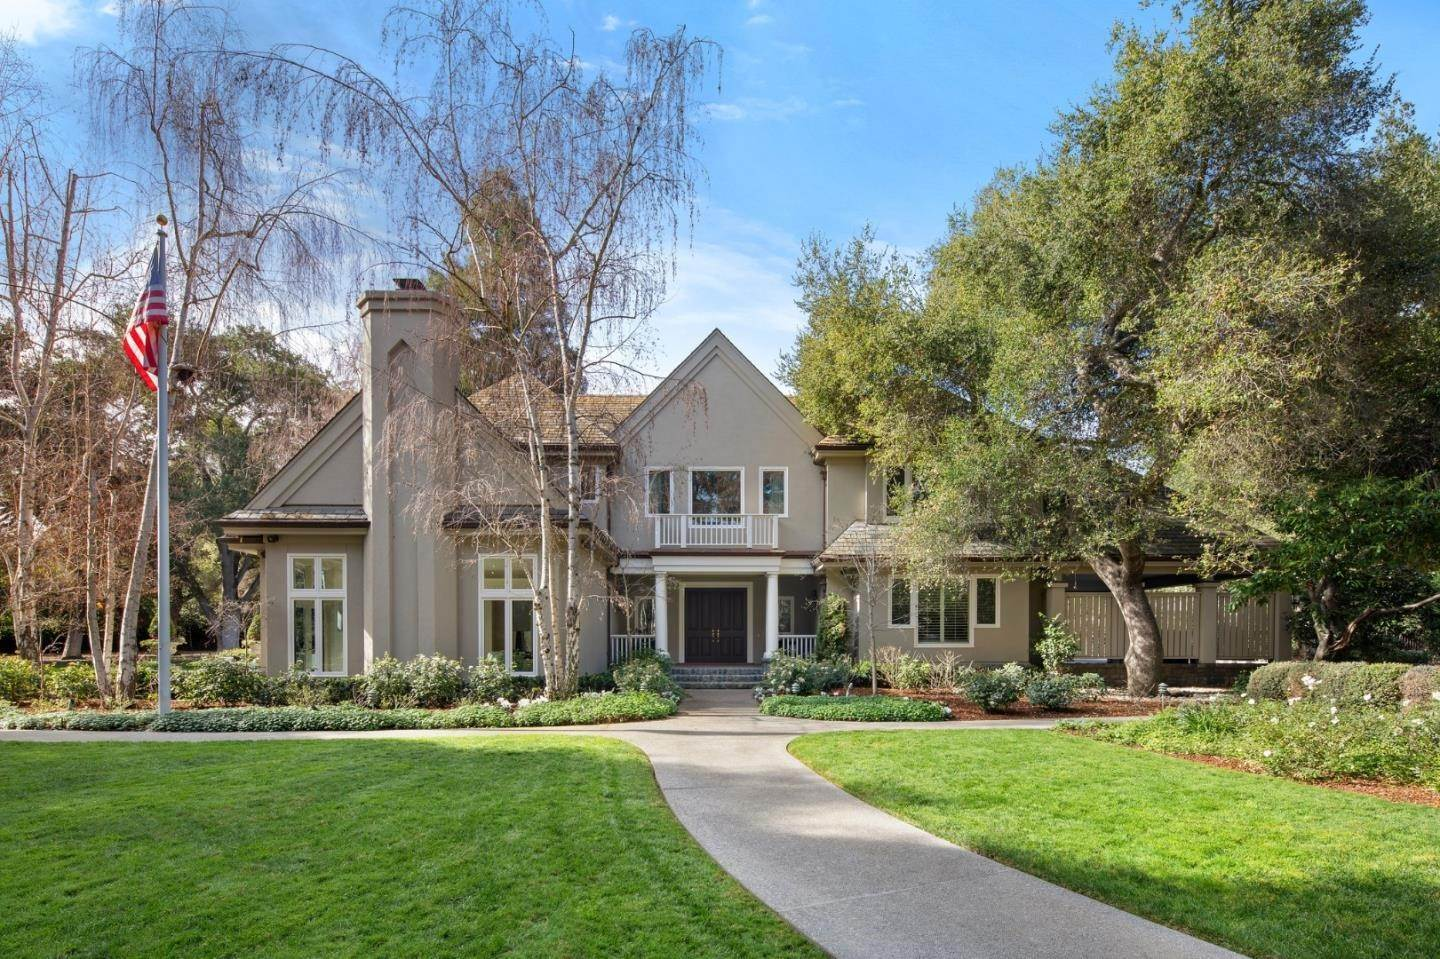 Single Family Homes for Sale at 191 Britton Avenue Atherton, California 94027 United States